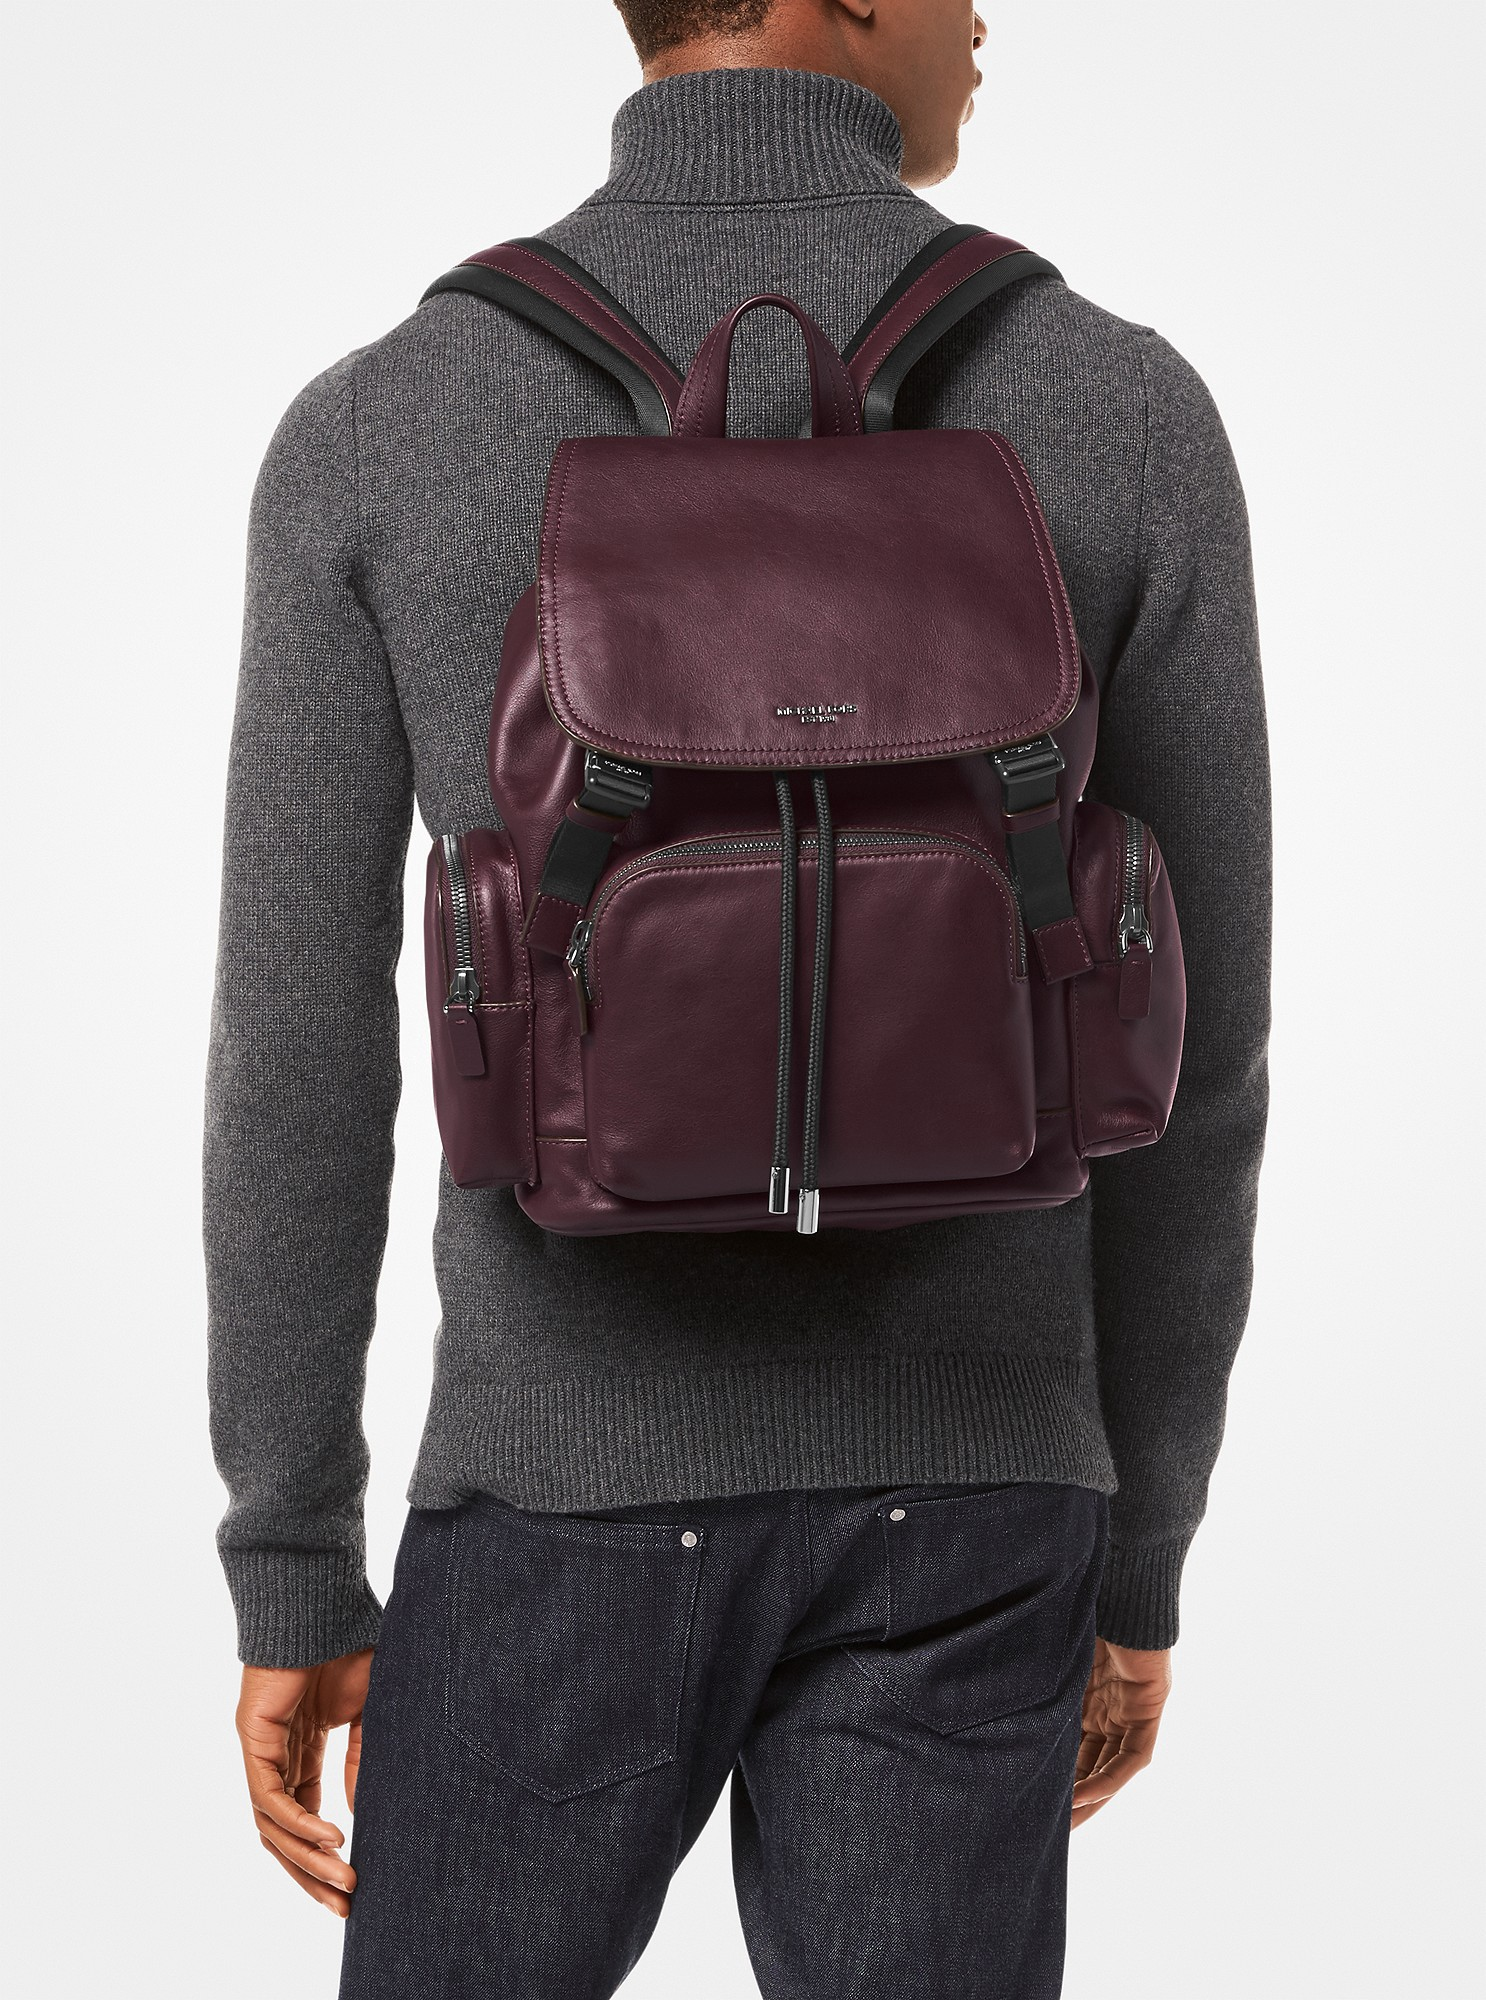 1bb4a7a1fcc7 Michael Kors Henry Leather Backpack - Cordovan | Products | Leather ...